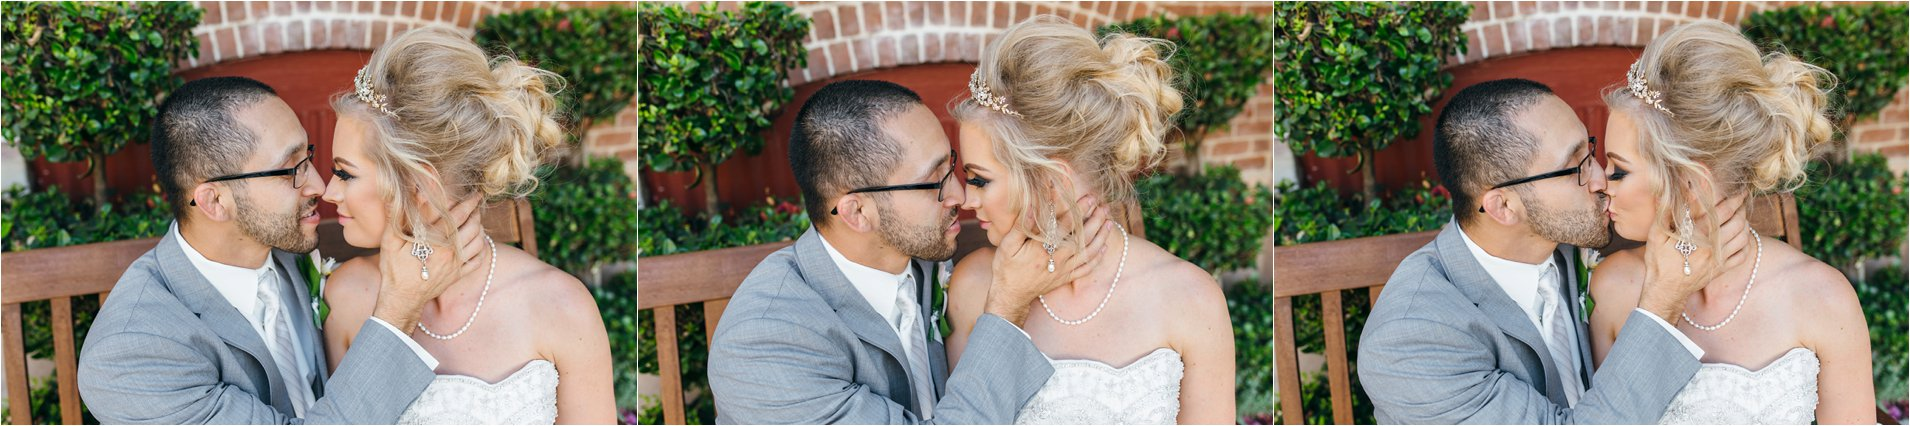 Romantic Bride and Groom Photos in Redlands